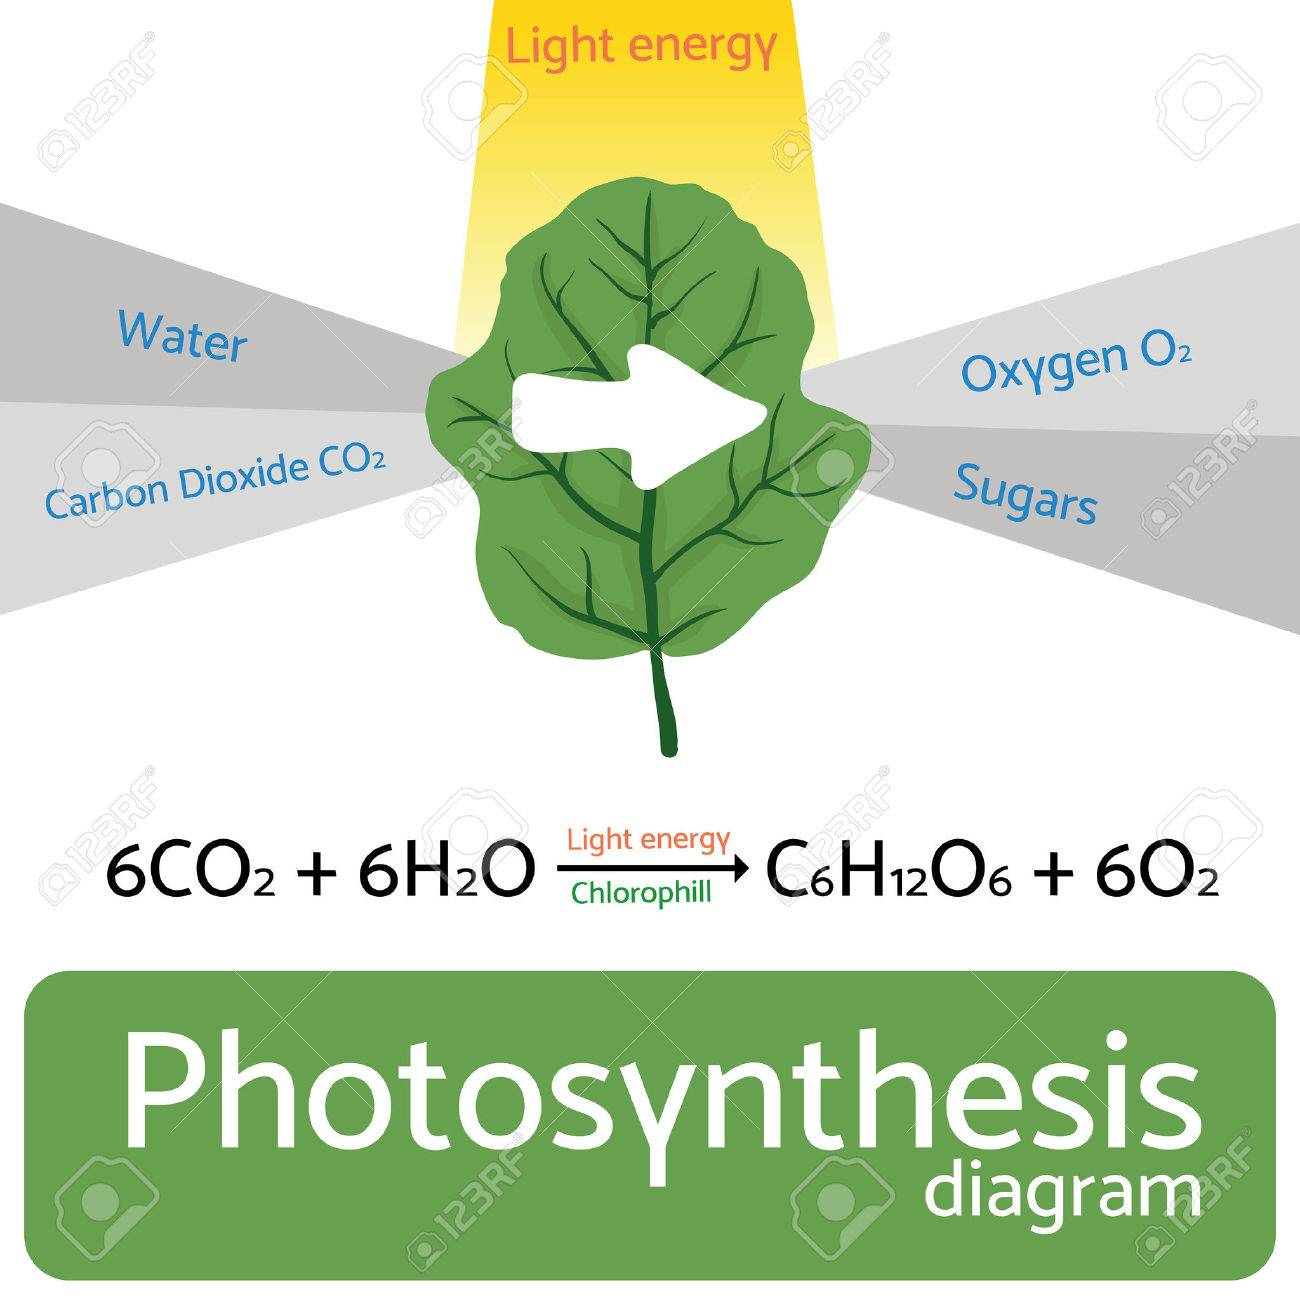 Photosynthesis diagram schematic illustration of the photosynthesis photosynthesis diagram schematic illustration of the photosynthesis process stock vector 56913066 ccuart Images